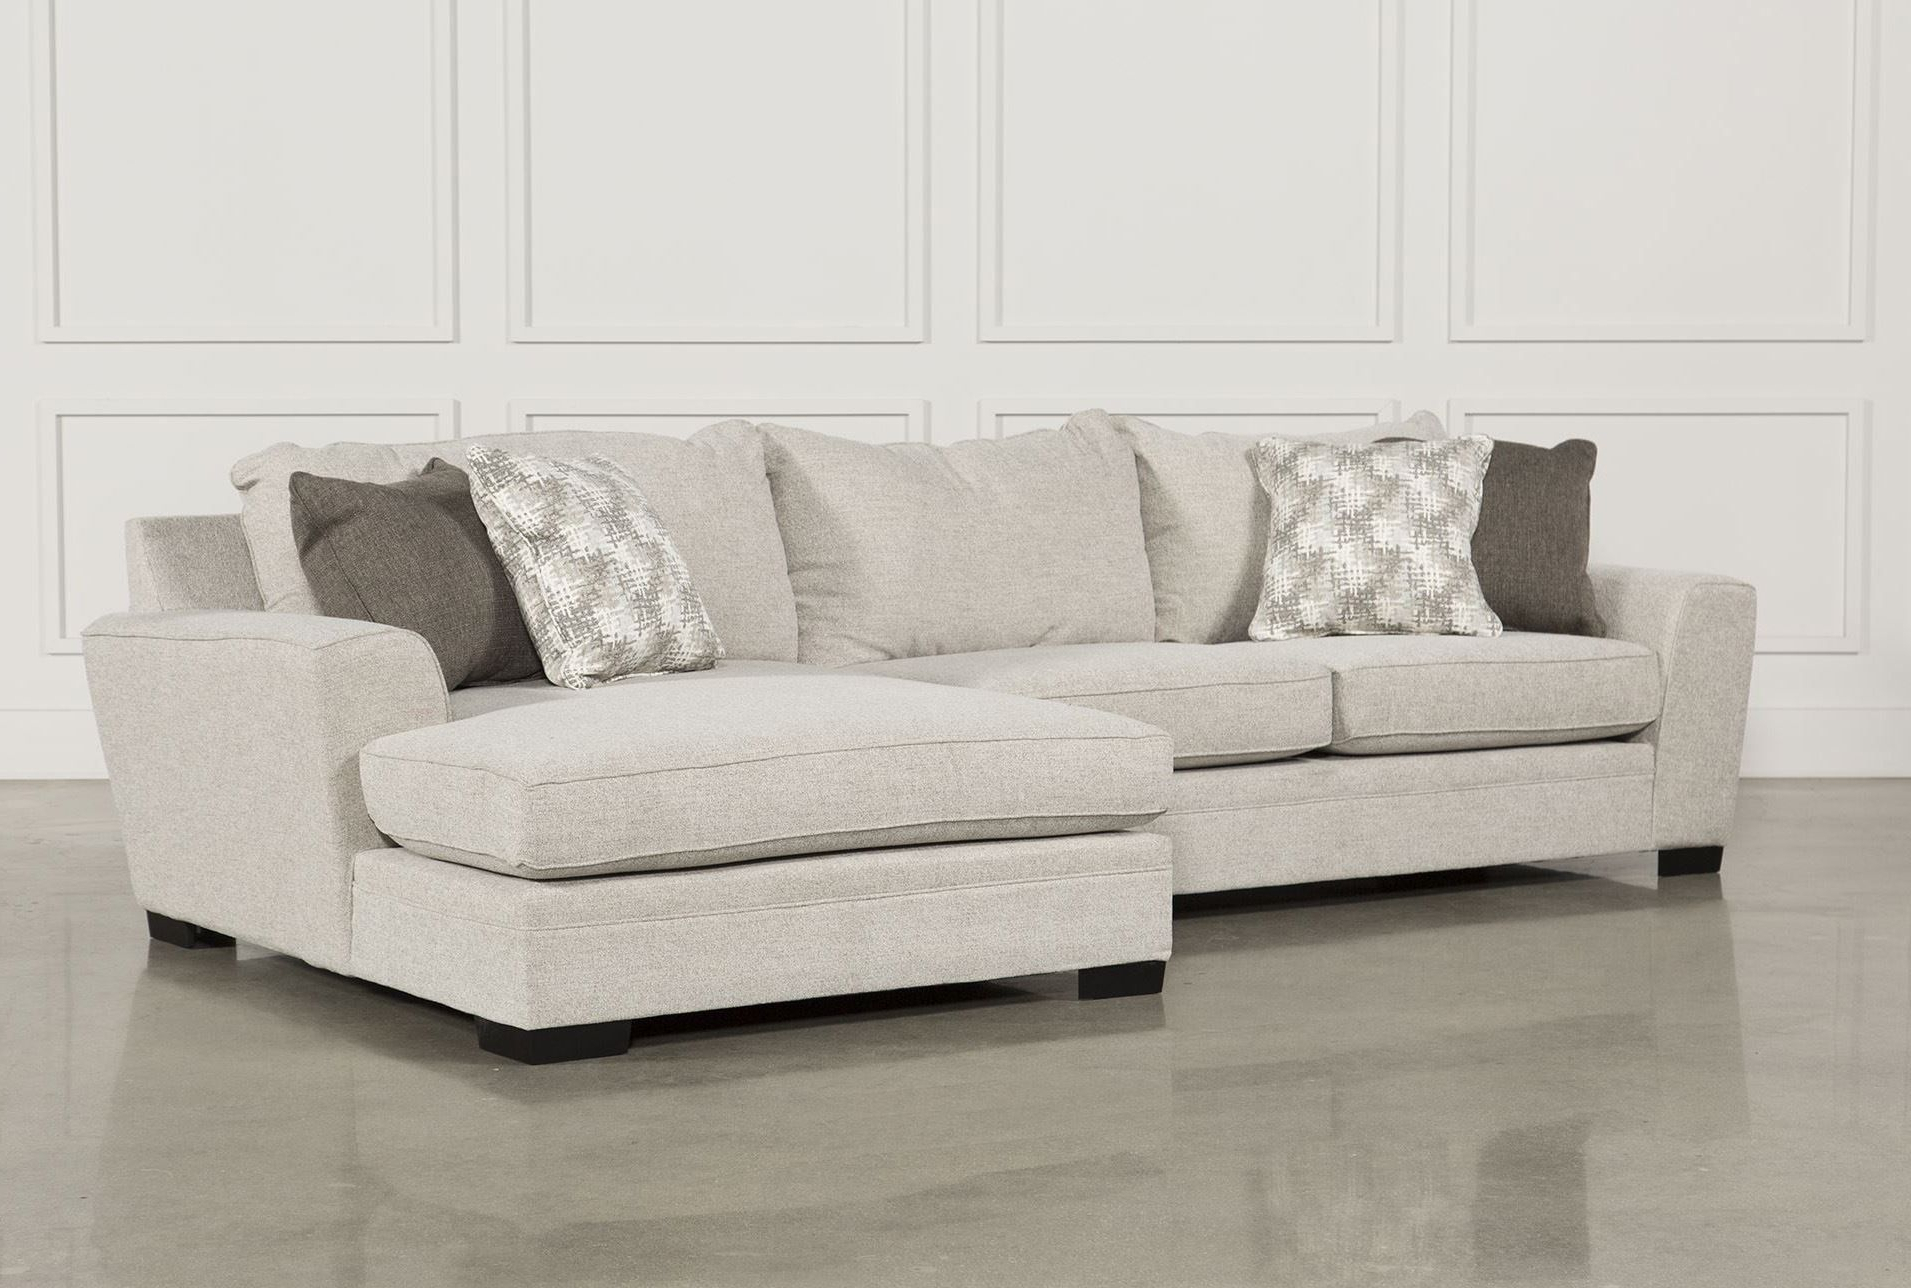 Delano 2 Piece Sectional W/raf Oversized Chaise, Beige, Sofas With Regard To 2018 Aspen 2 Piece Sectionals With Raf Chaise (Gallery 12 of 20)